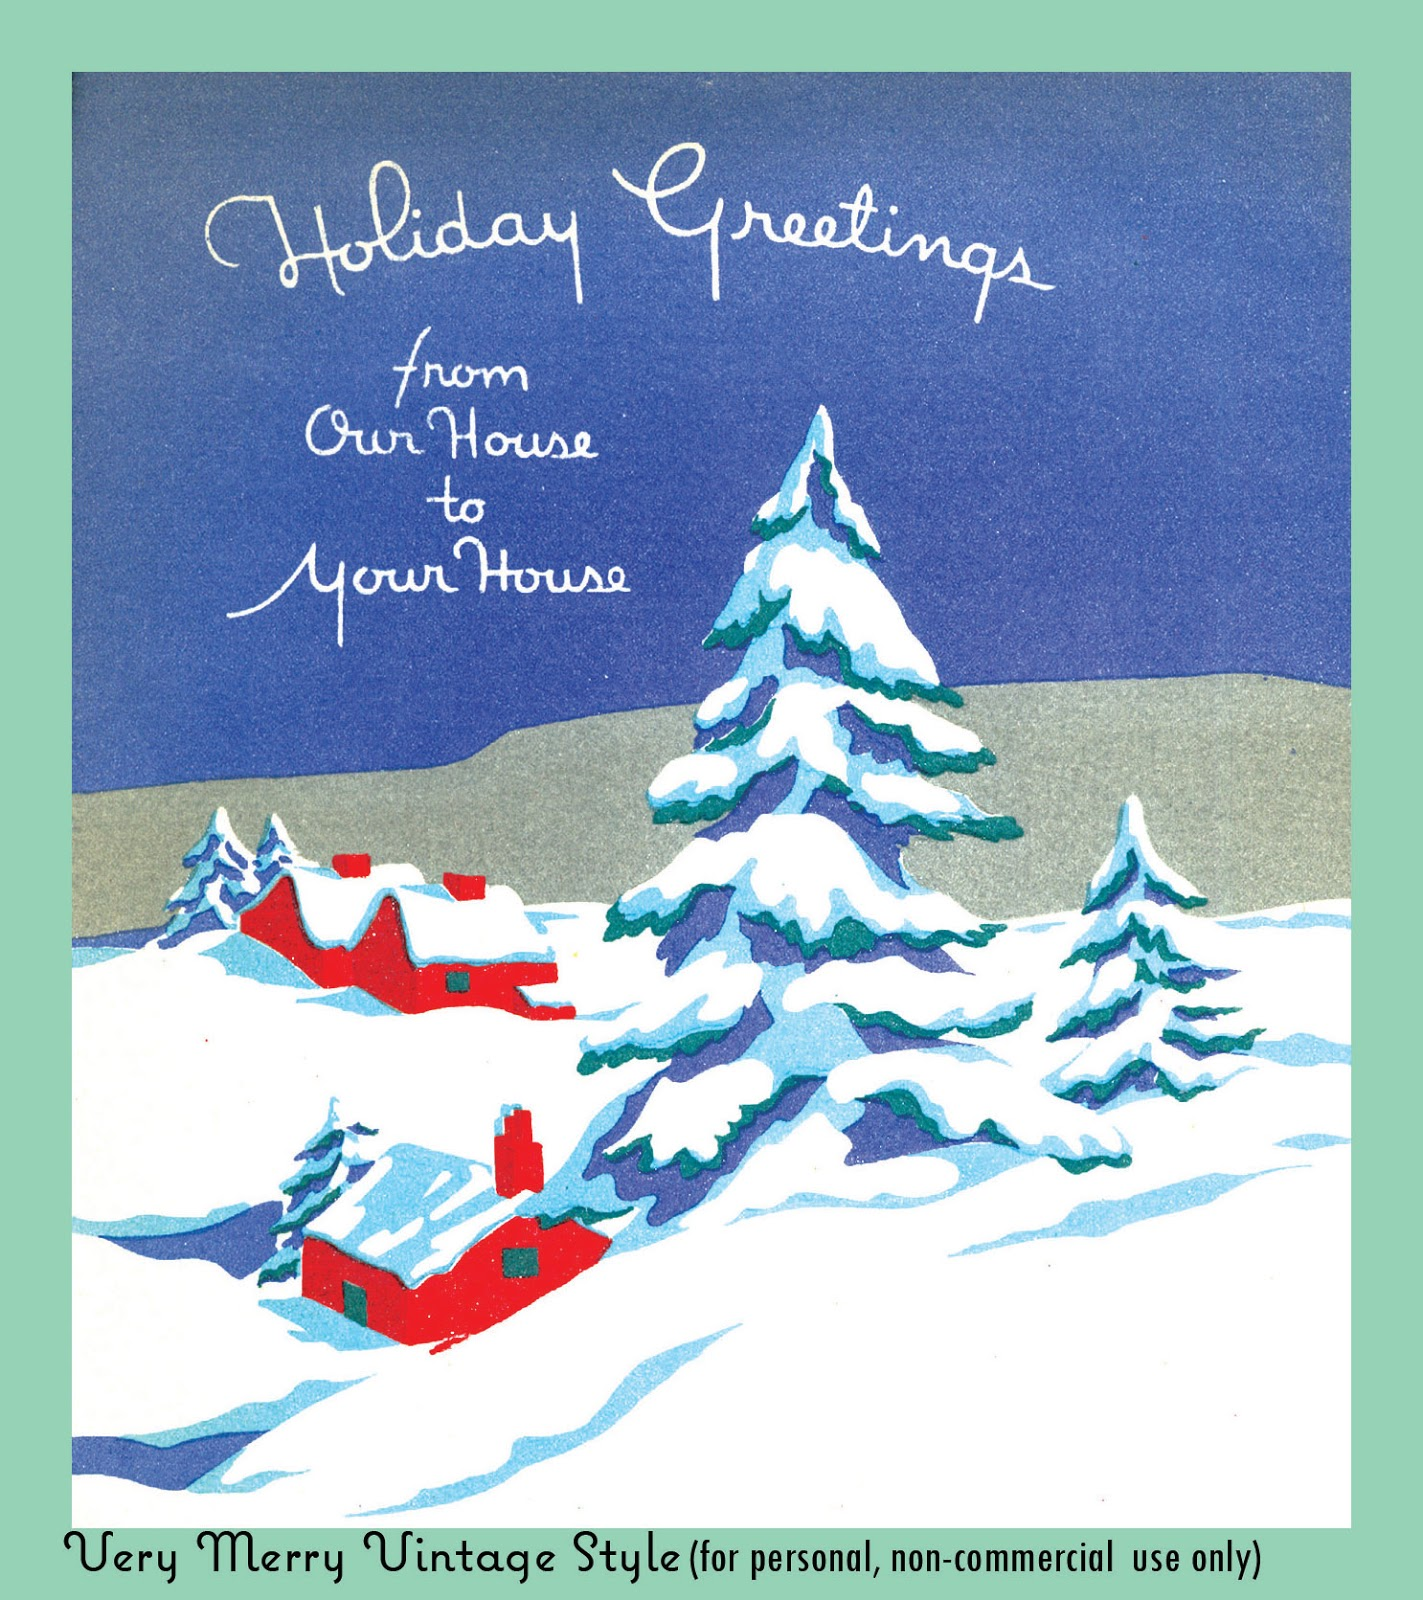 Christmas card sayings from our home to yours the best collection very merry vintage syle from our house to yours vintage christmas card kristyandbryce Choice Image